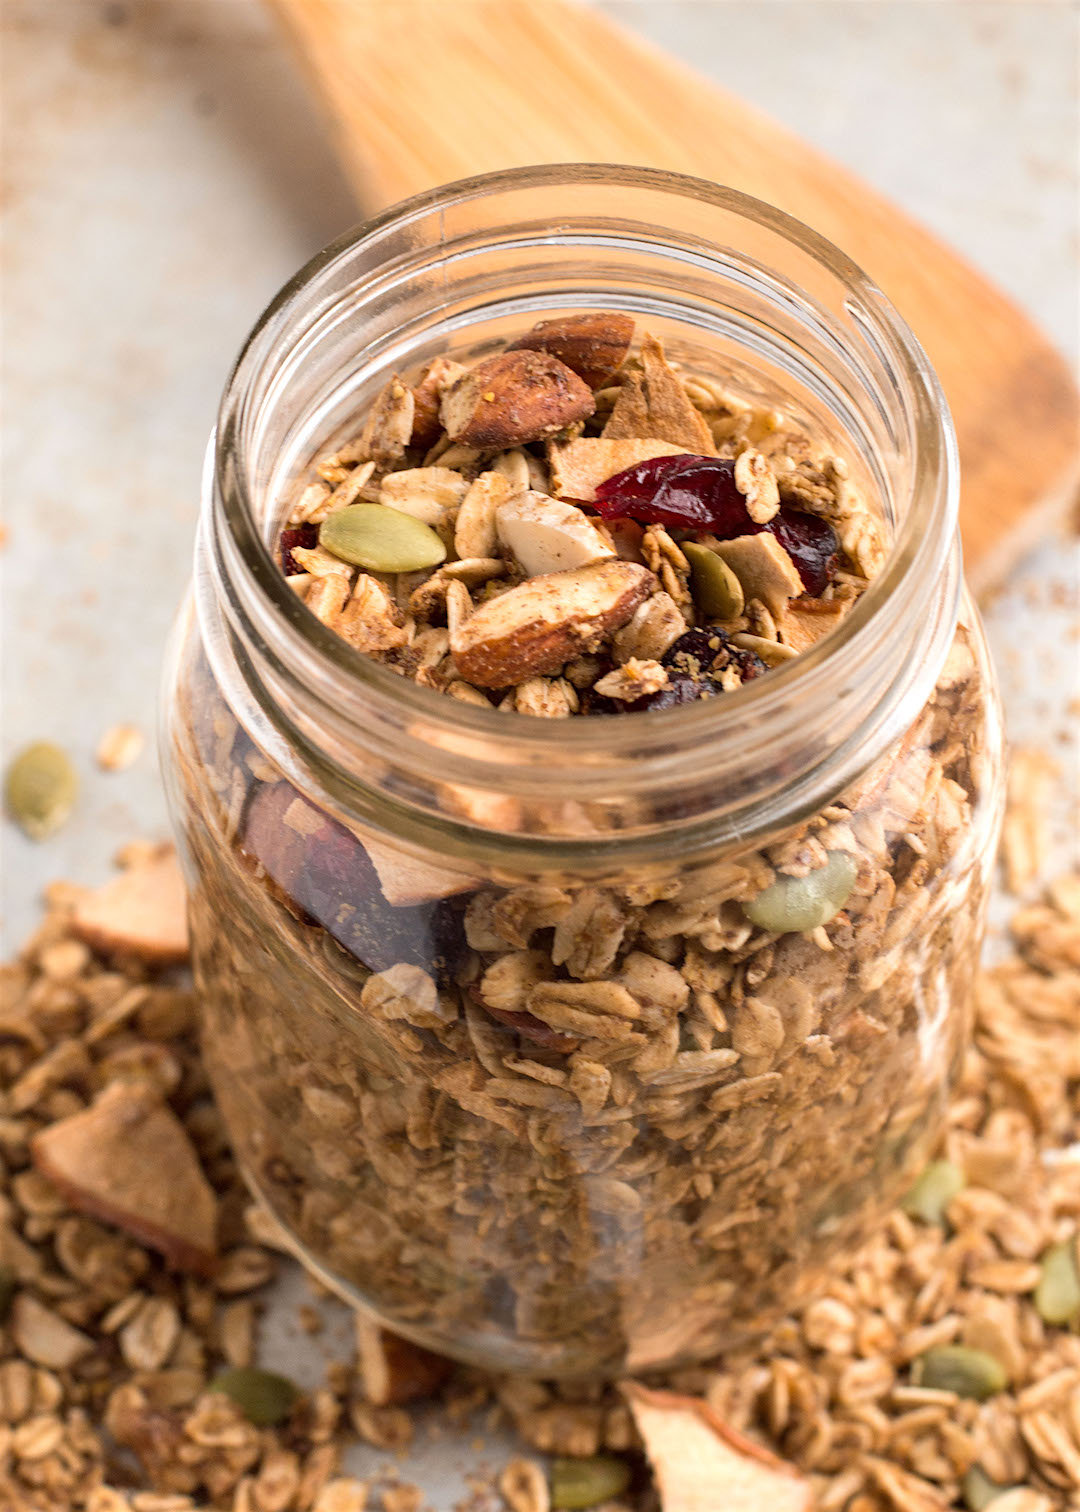 This Apple Cinnamon Granola recipe is a vegan, gluten free and healthy breakfast option made with only real and good-for-you ingredients like oats, nuts, seeds and dried fruit. It's like all the flavours of apple pie coming together in a granola that is pretty much like a healthy dessert for breakfast.